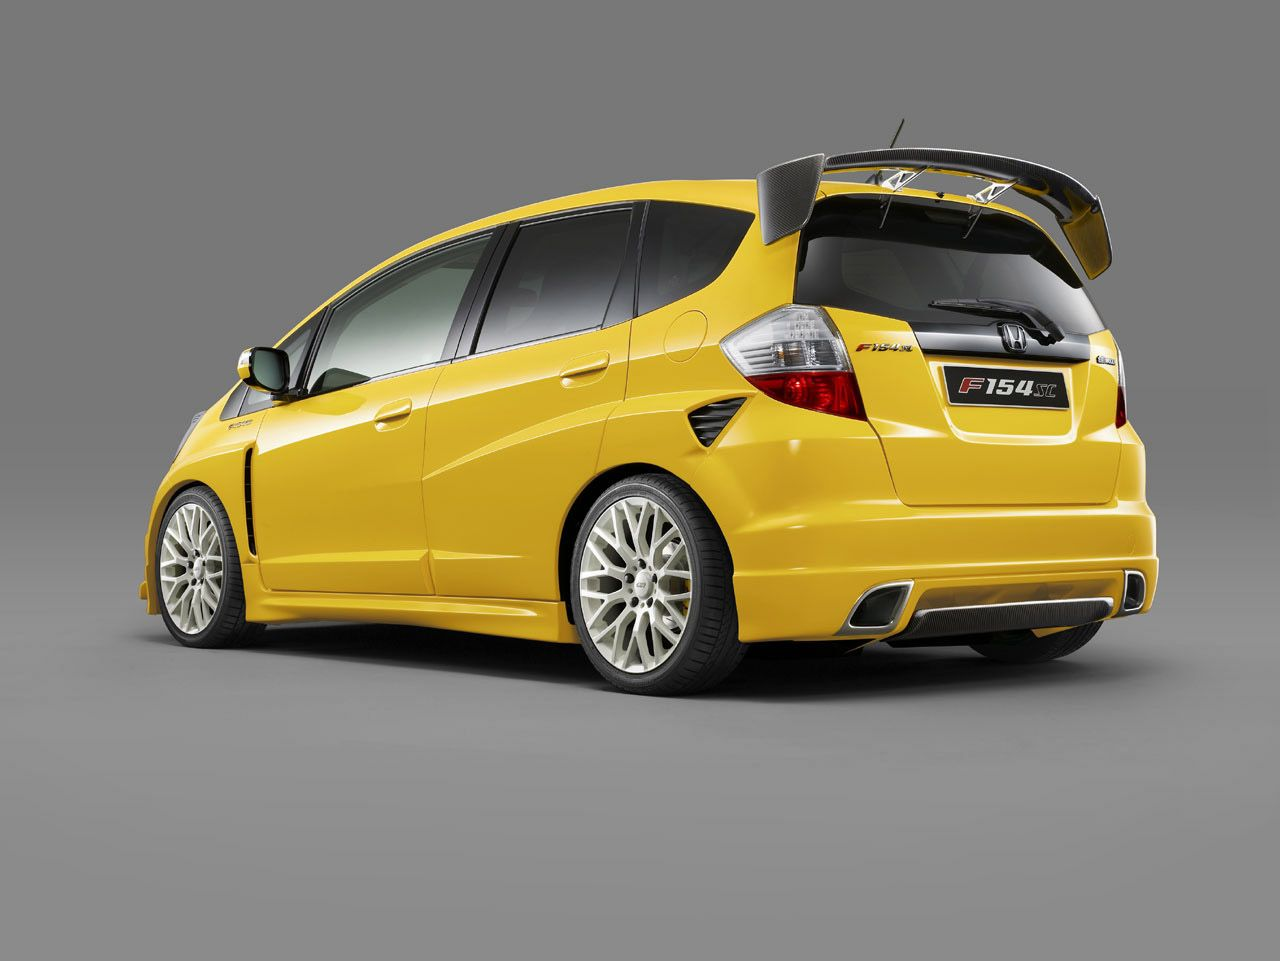 Honda jazz yellow rear back automotive pictures wallpapers